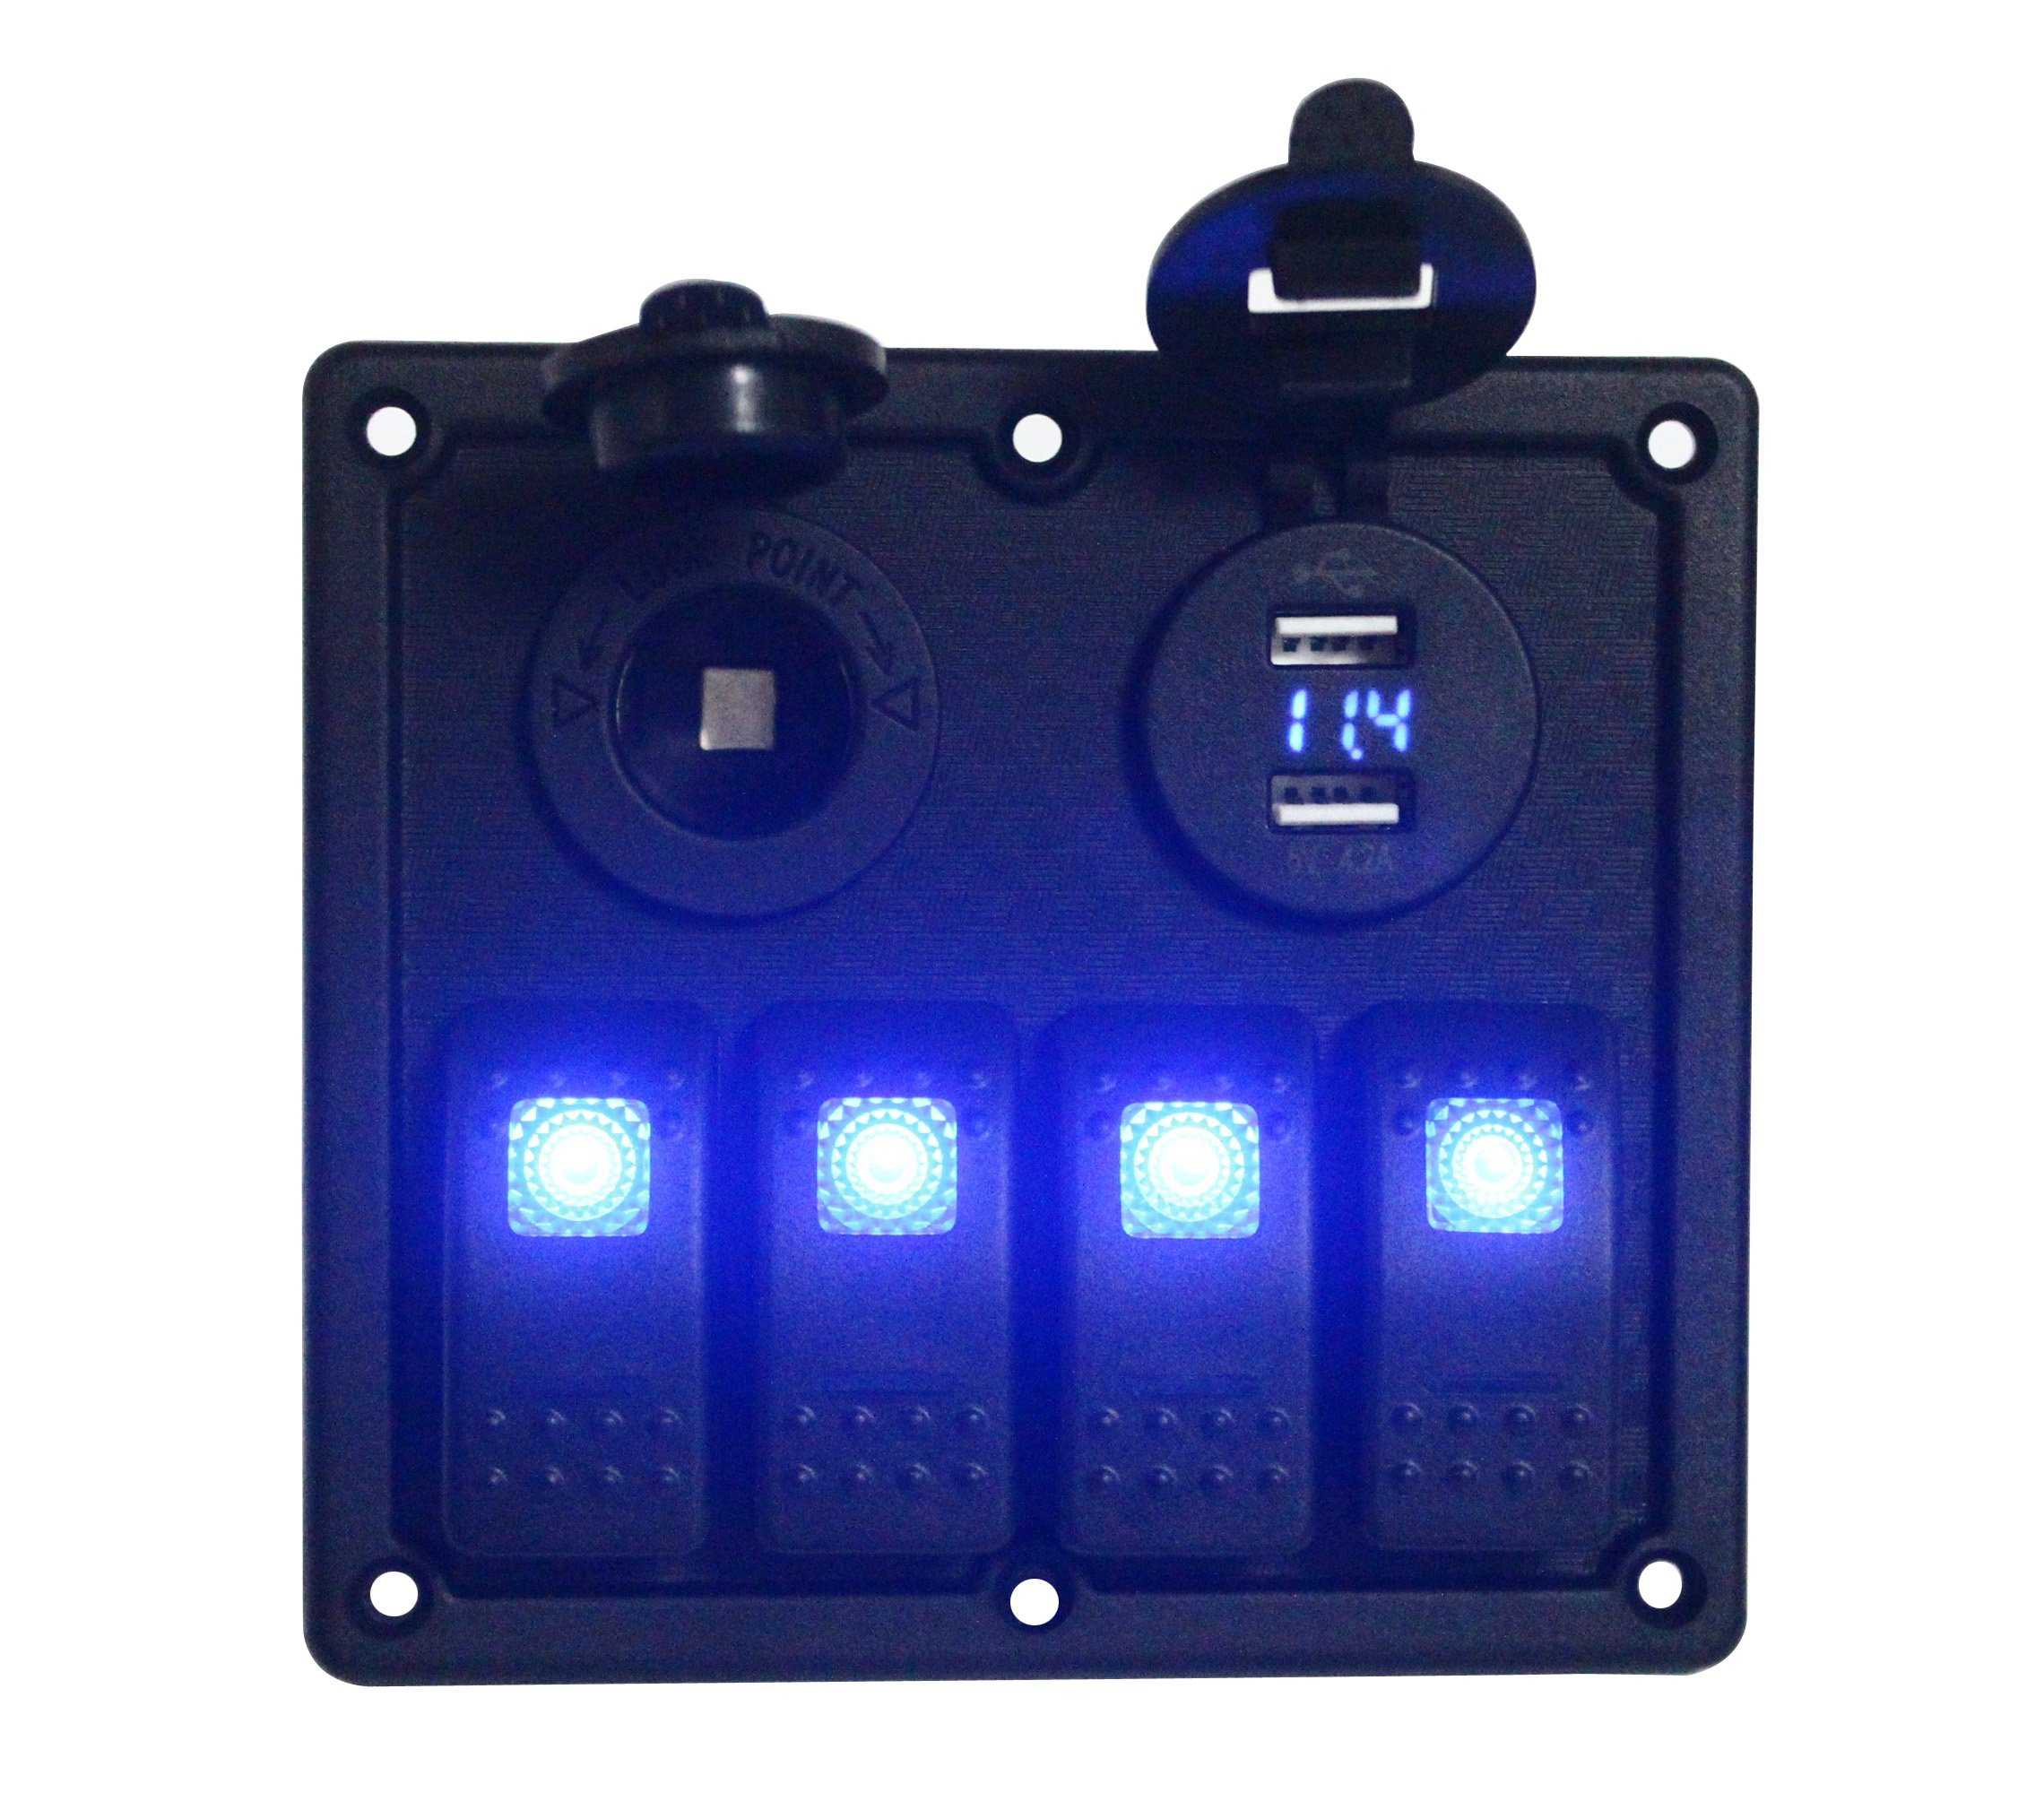 BANDC 12v/24v 4 Gang Rocker Switch Panel Blue Led with Power outlet socket & USB Charger Socket/VOLTMETER